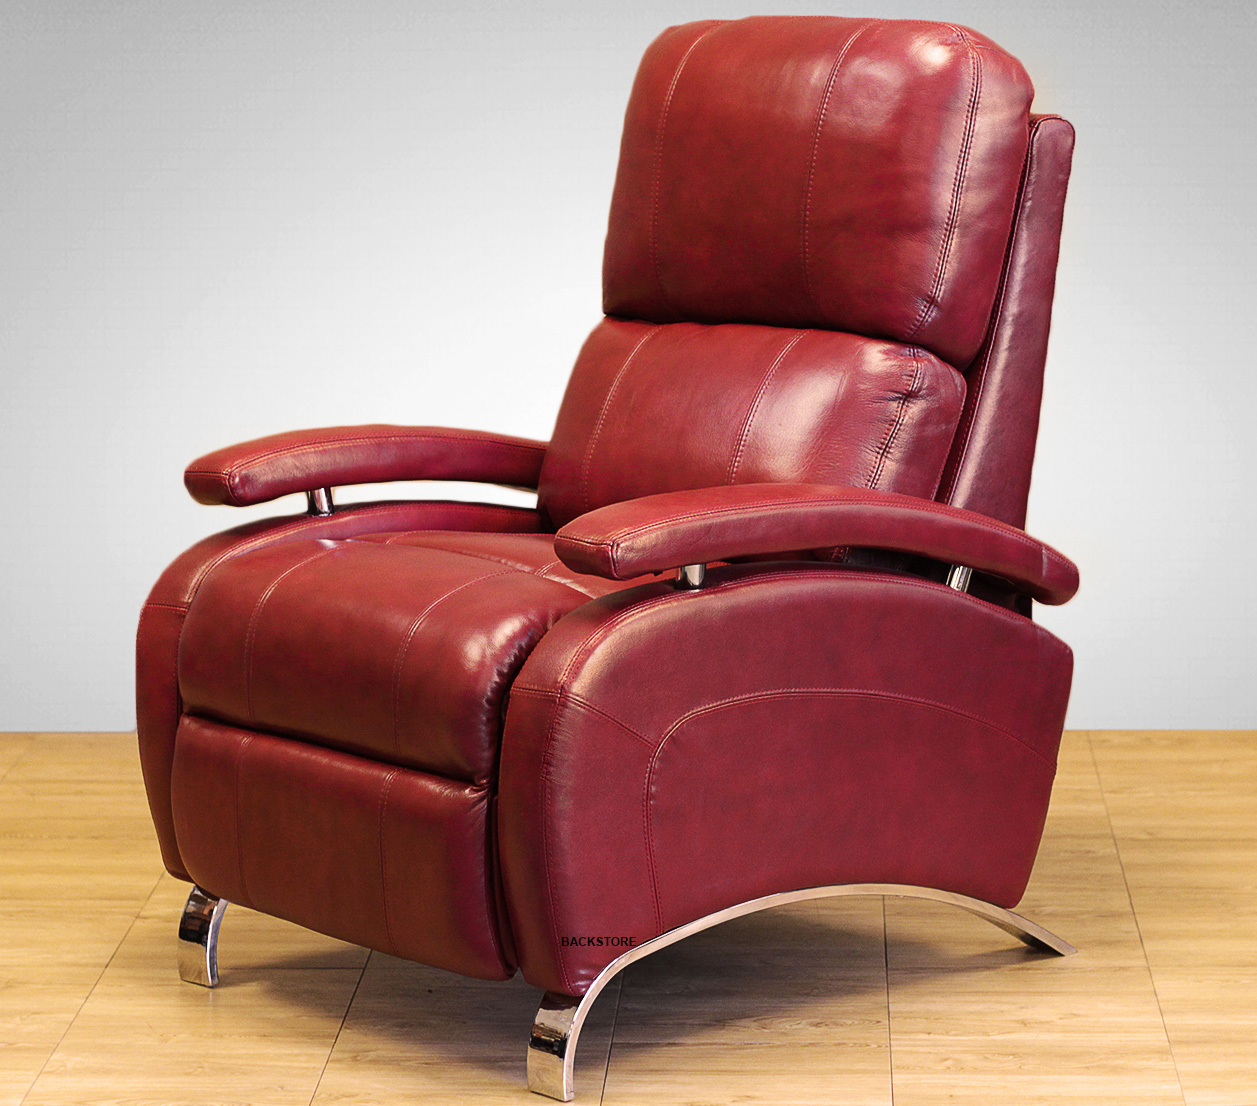 Barcalounger Oracle II Genuine Leather Recliner Lounger